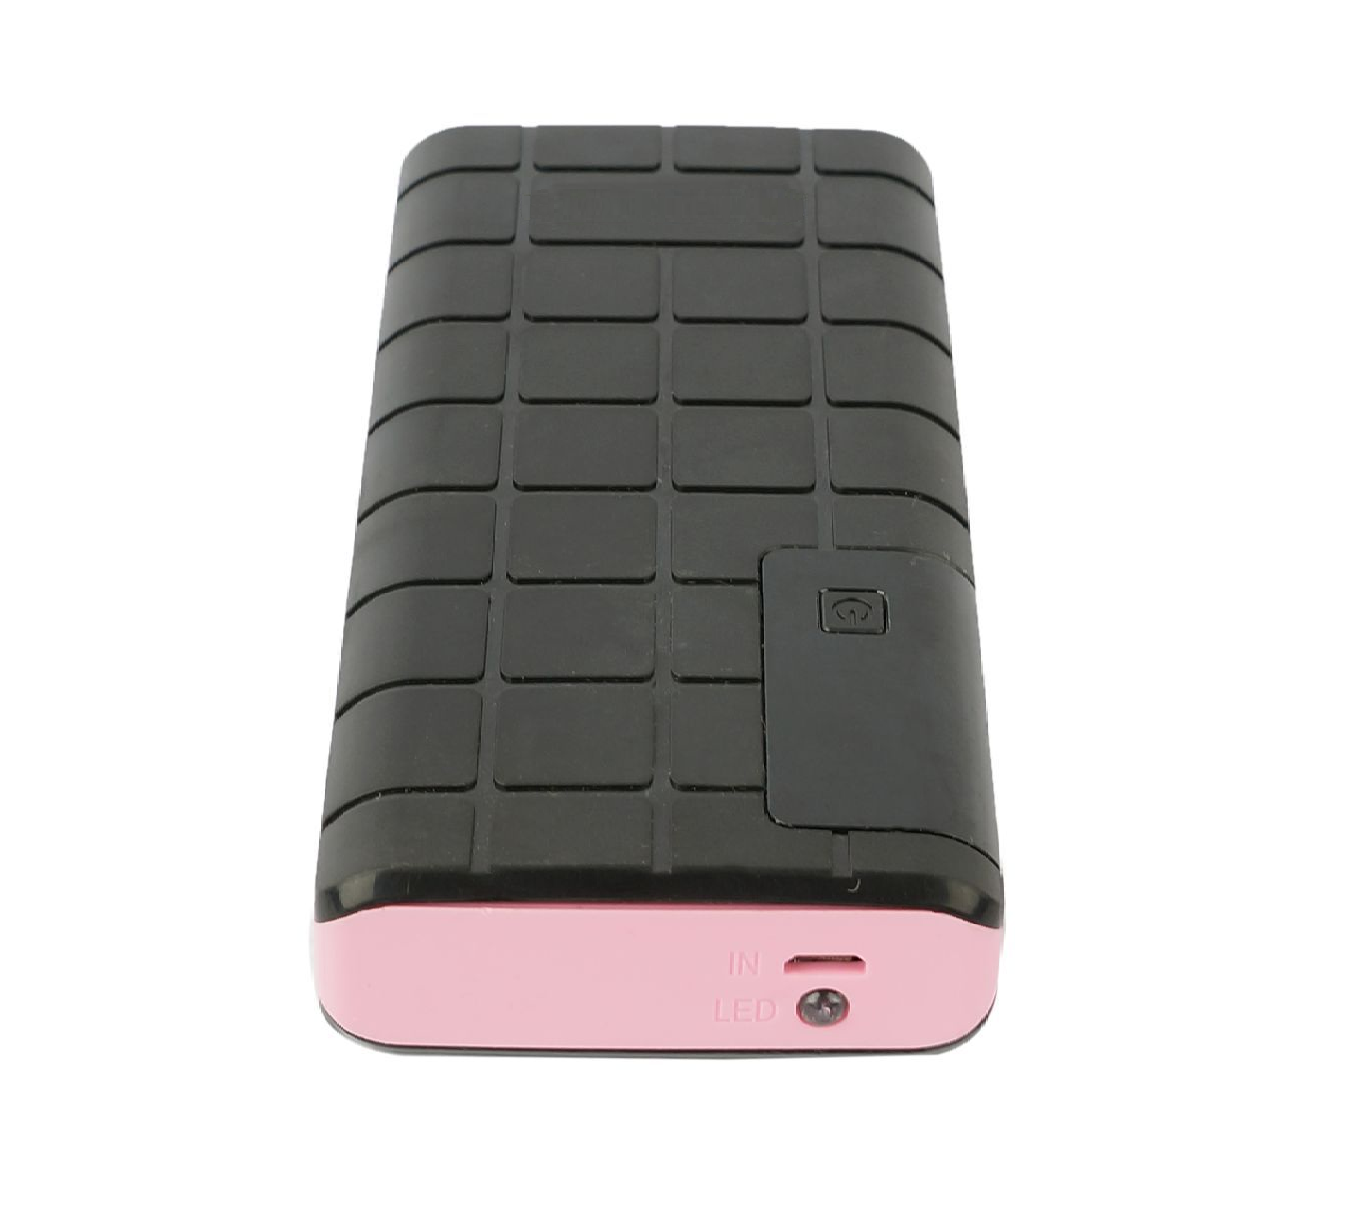 HBNS Check Box 20000mAh Power Bank With Fast Charging Speed,Lithiom ion Battery,Fast Charger